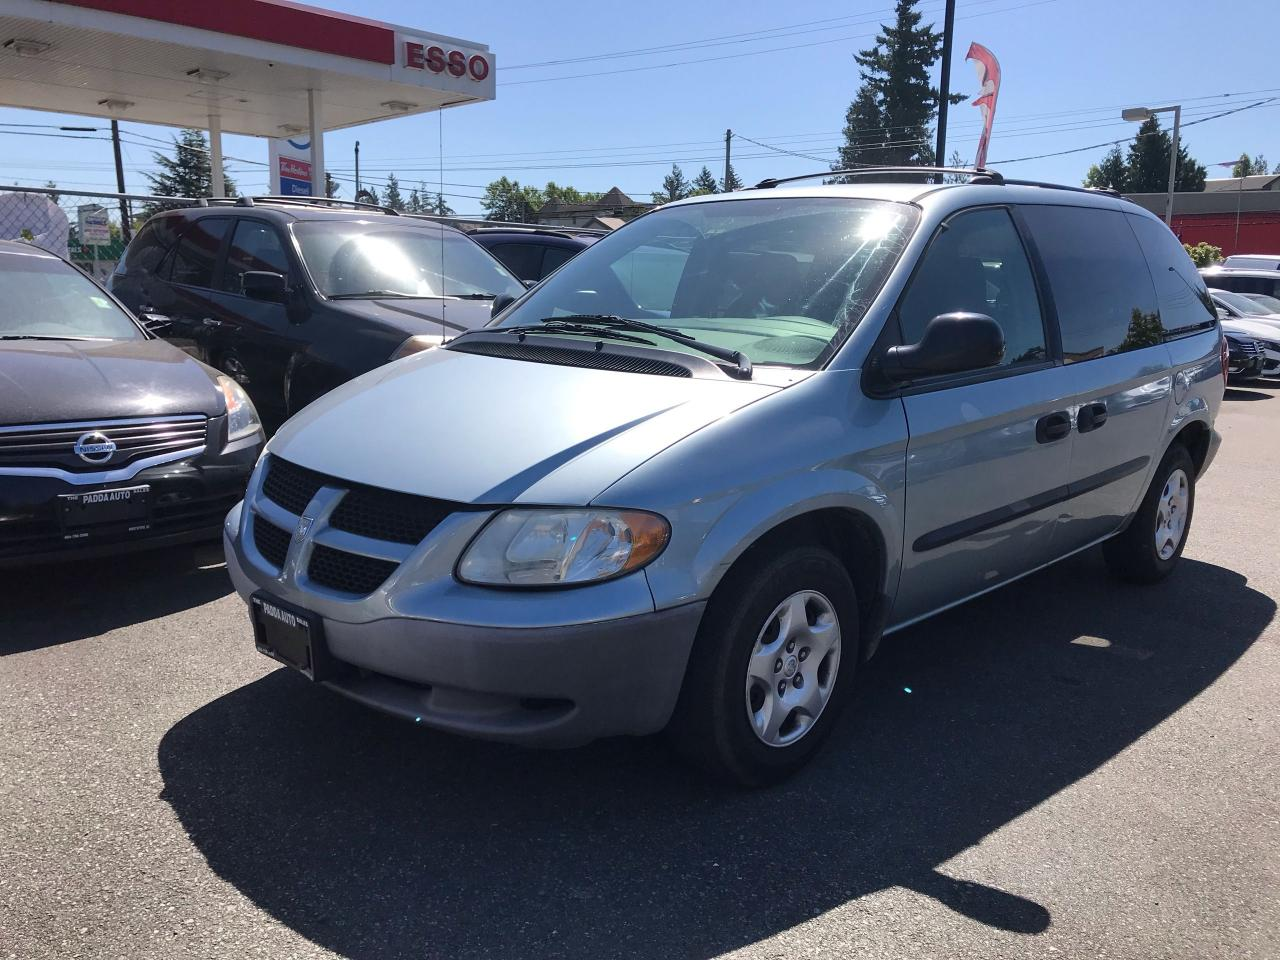 used 2003 dodge caravan se for sale in abbotsford, british columbia carpages.ca